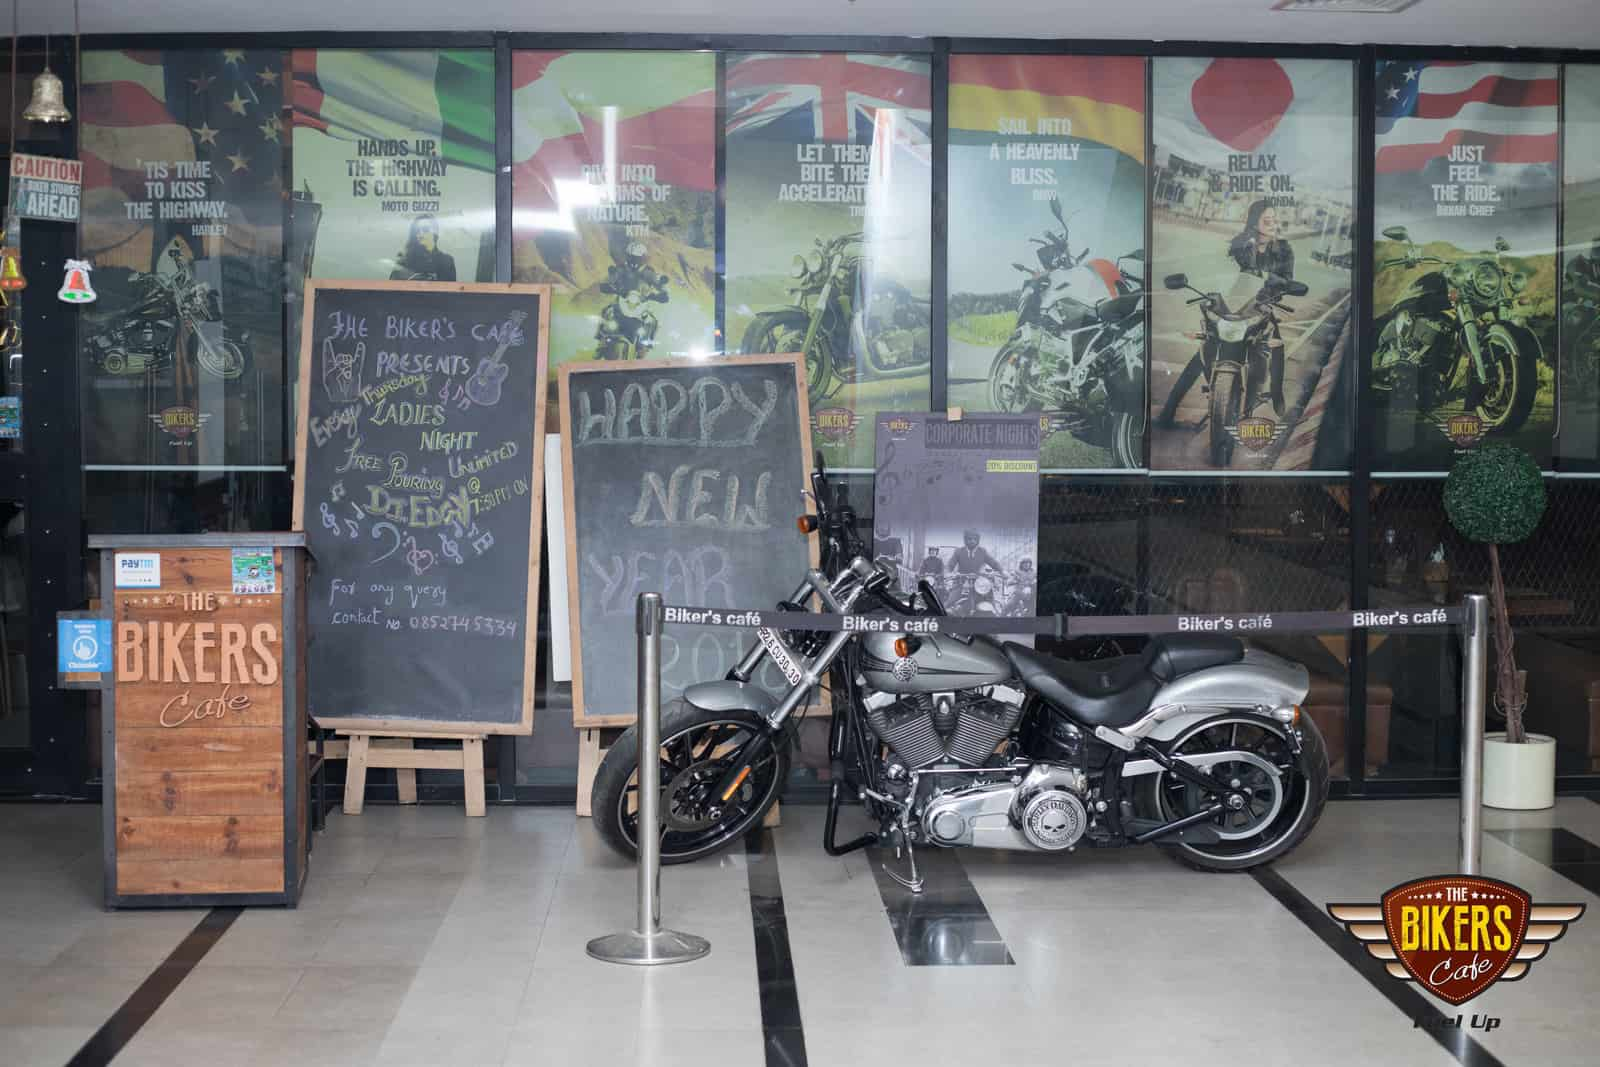 Theme Party at the bikers cafe